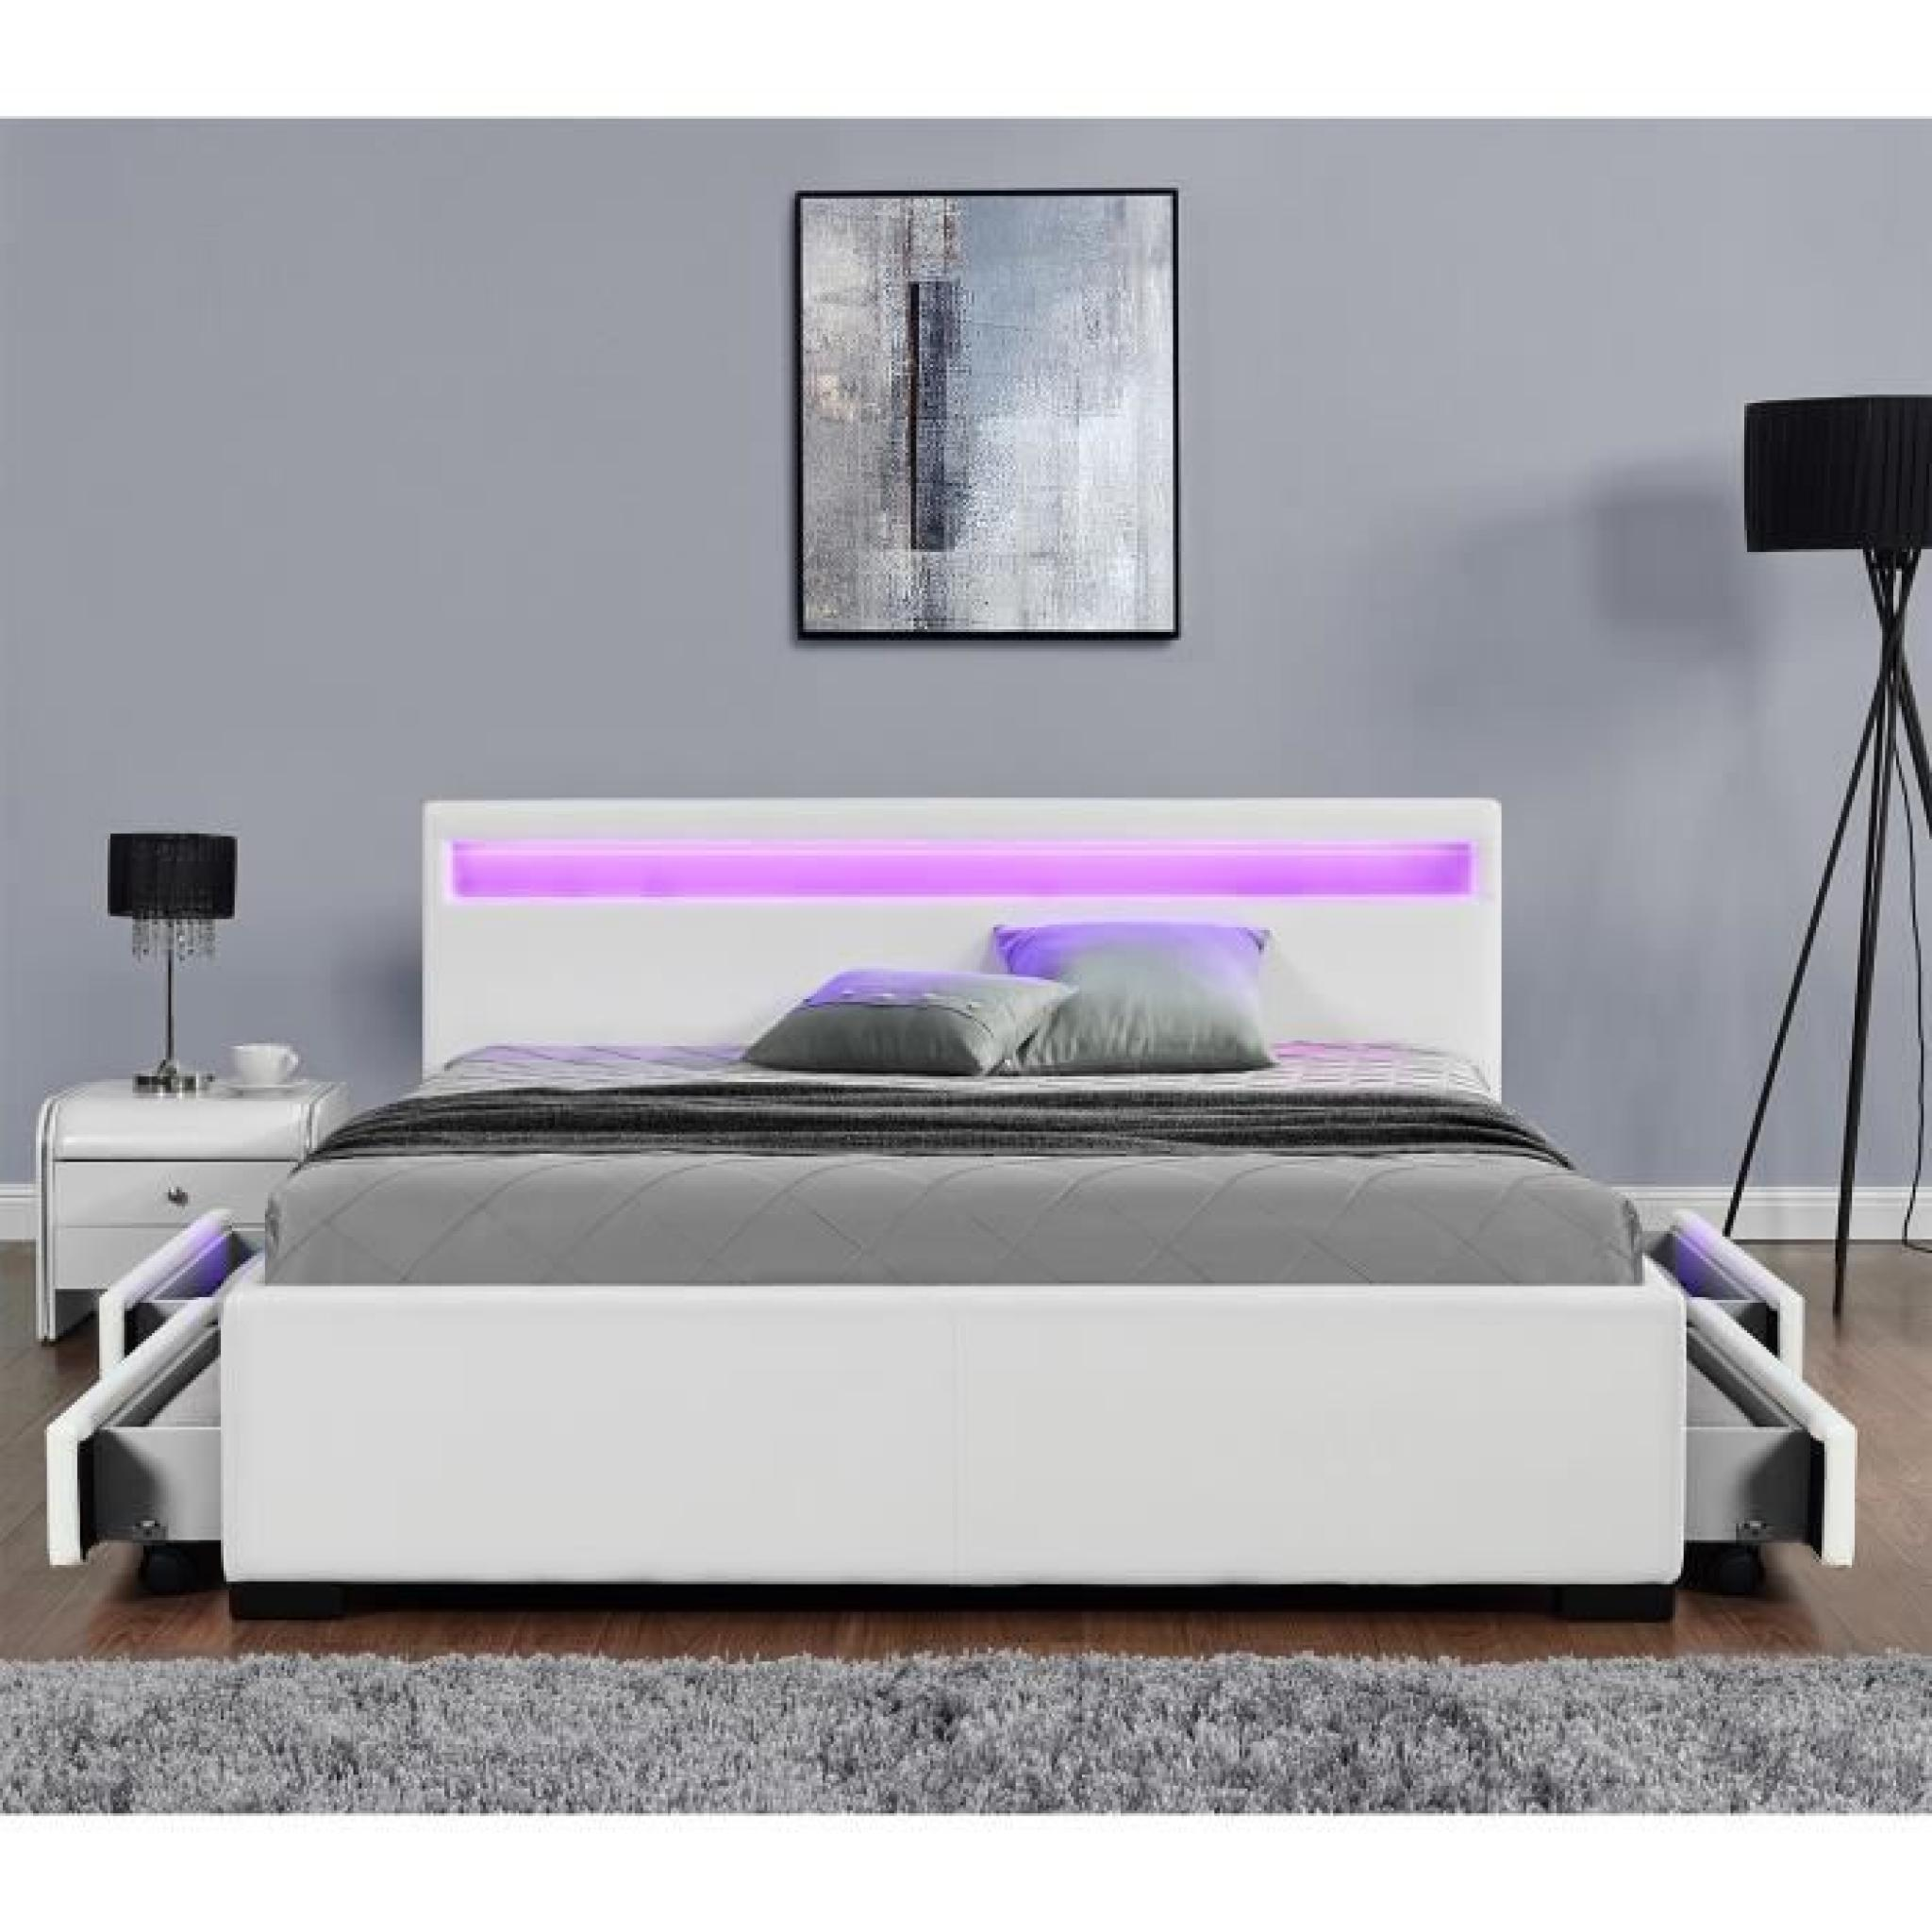 wonderful tete de lit rangement 160 11 lit enfield blanc led et rangement tiroirs 160. Black Bedroom Furniture Sets. Home Design Ideas